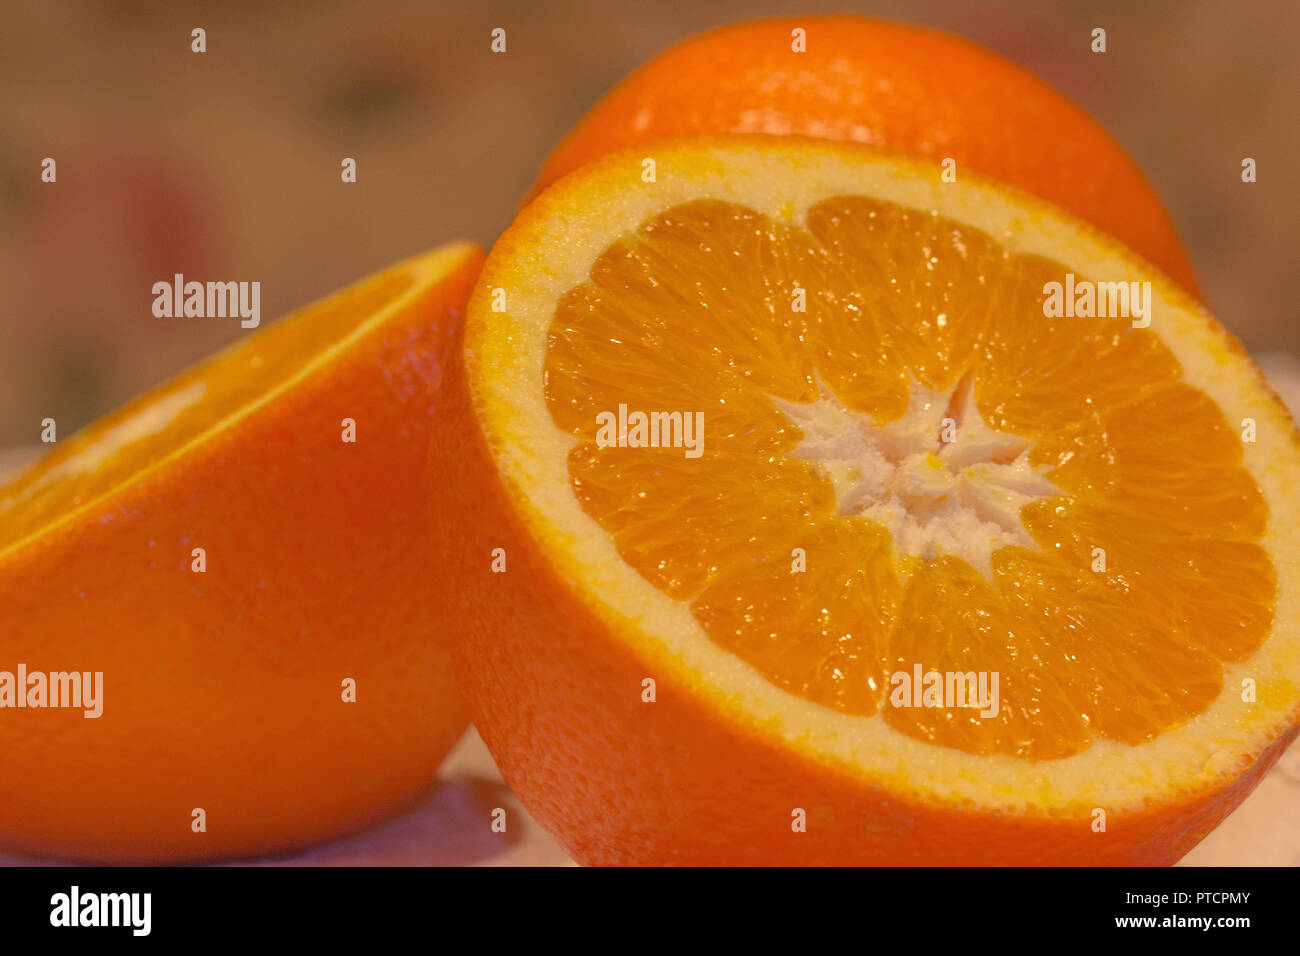 fresh delicious healthy orange before making food  or juice - Stock Image